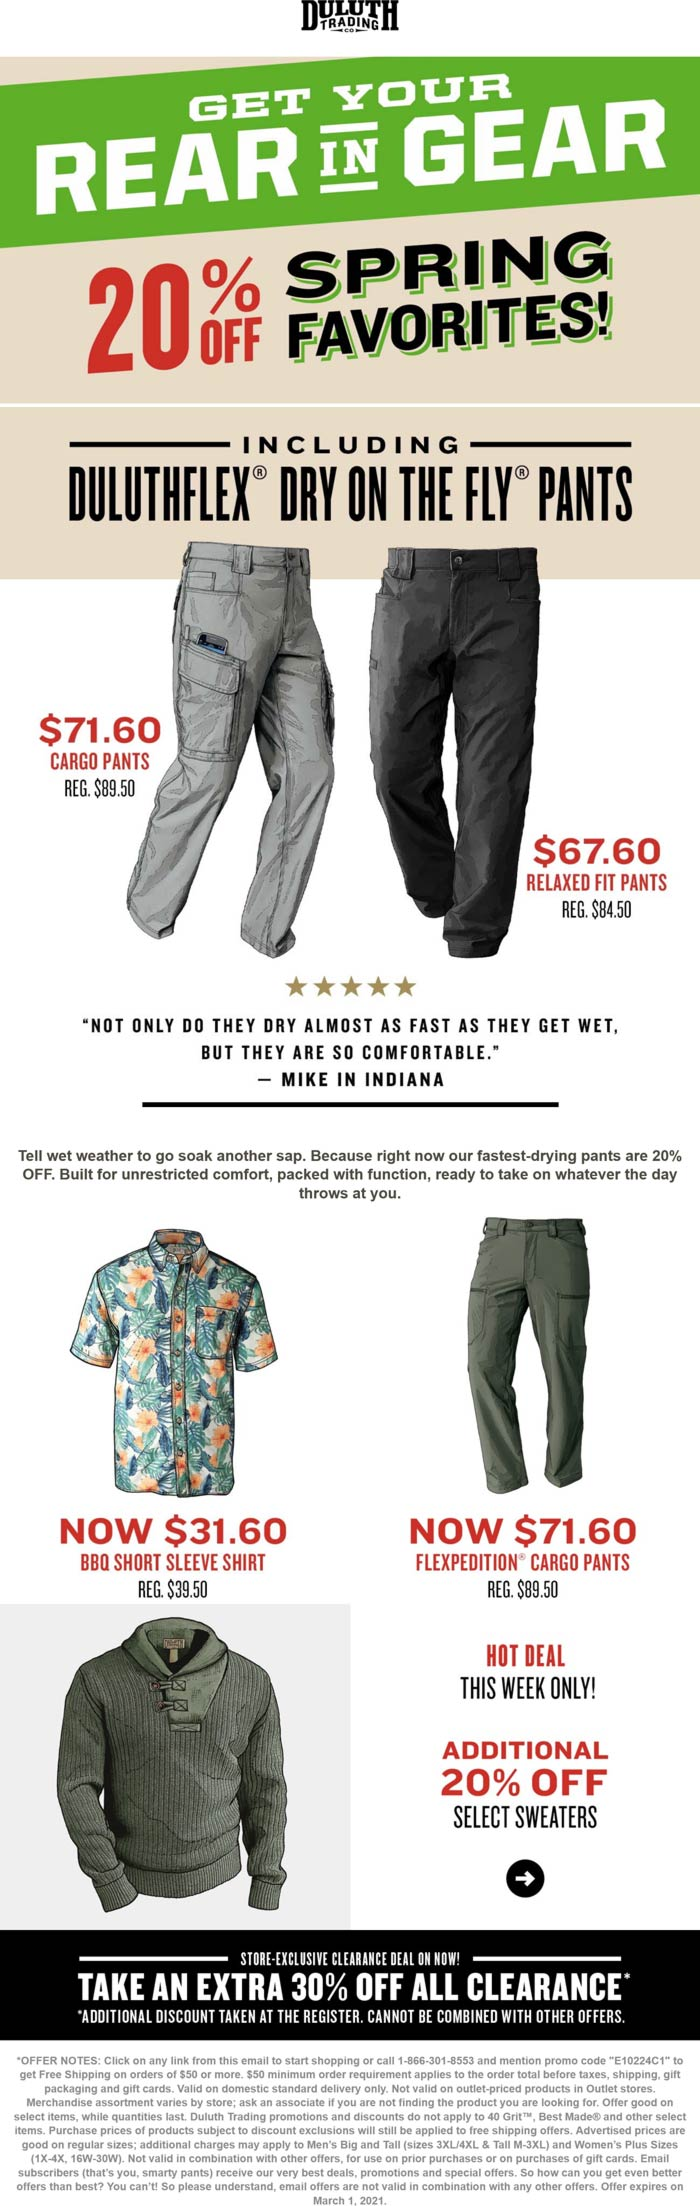 Duluth Trading stores Coupon  20% off Spring favorites at Duluth Trading Co via promo code E10224C1 #duluthtrading